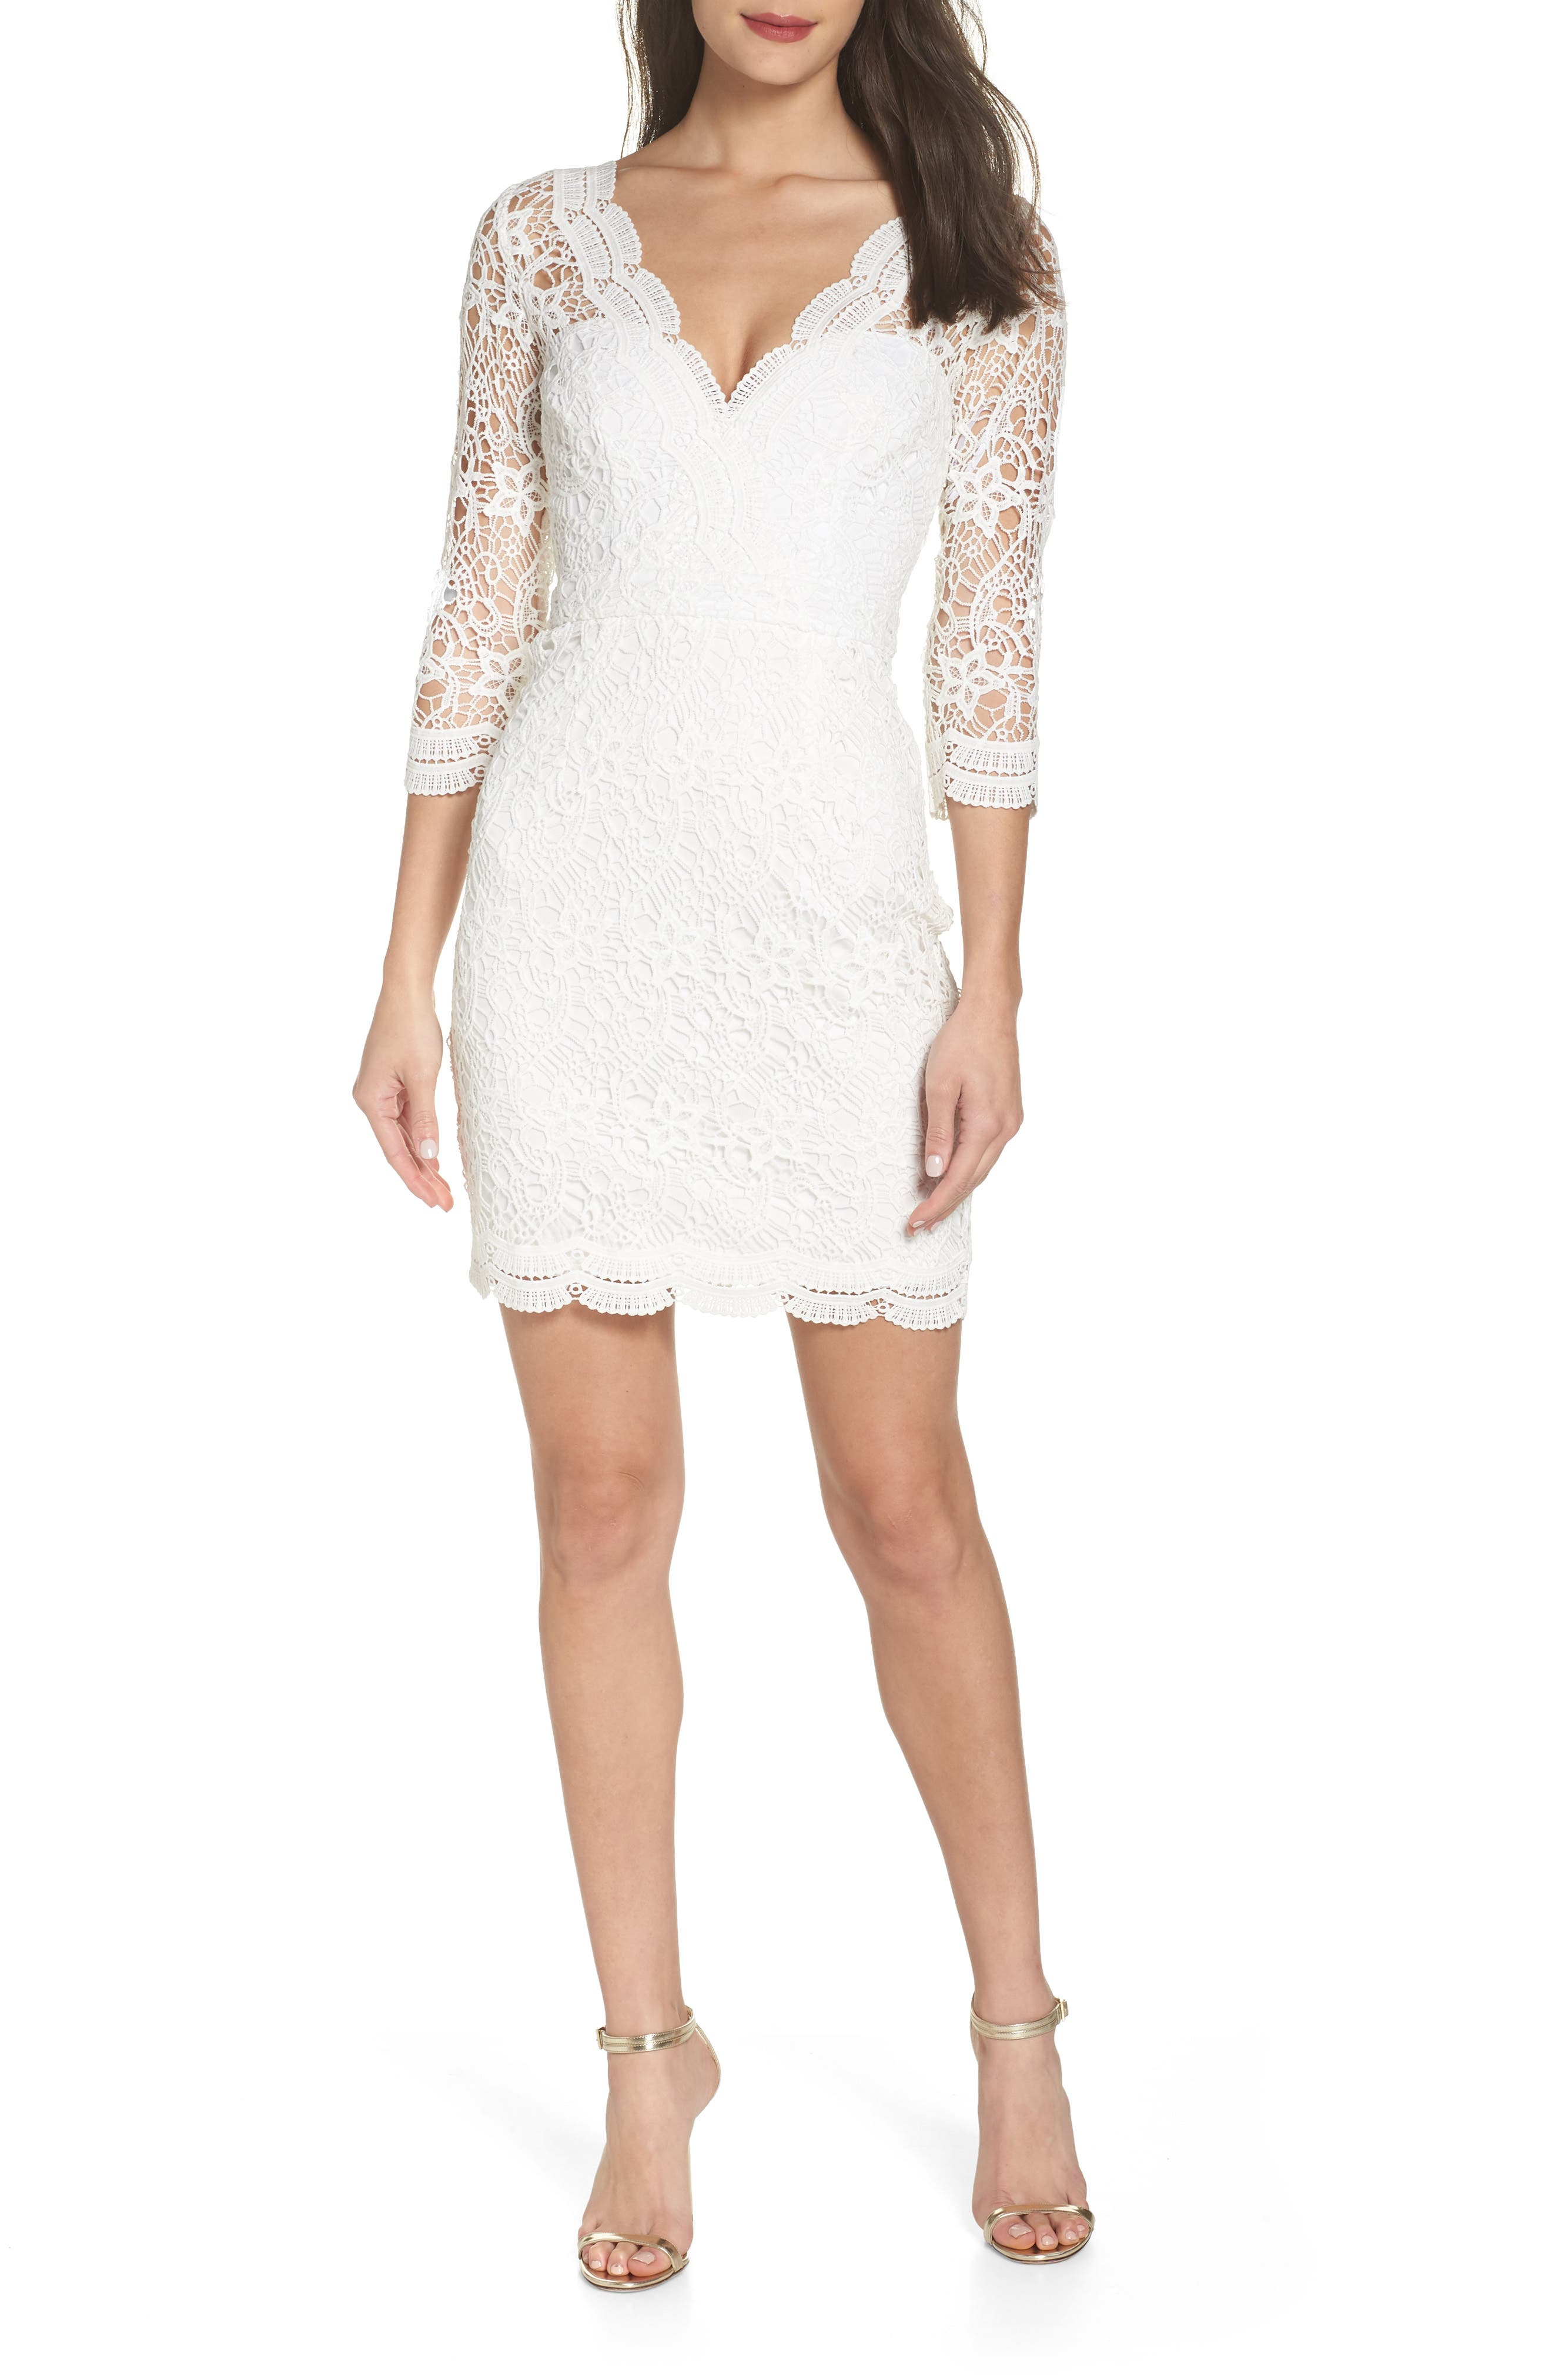 White Lace Dresses Fo Young